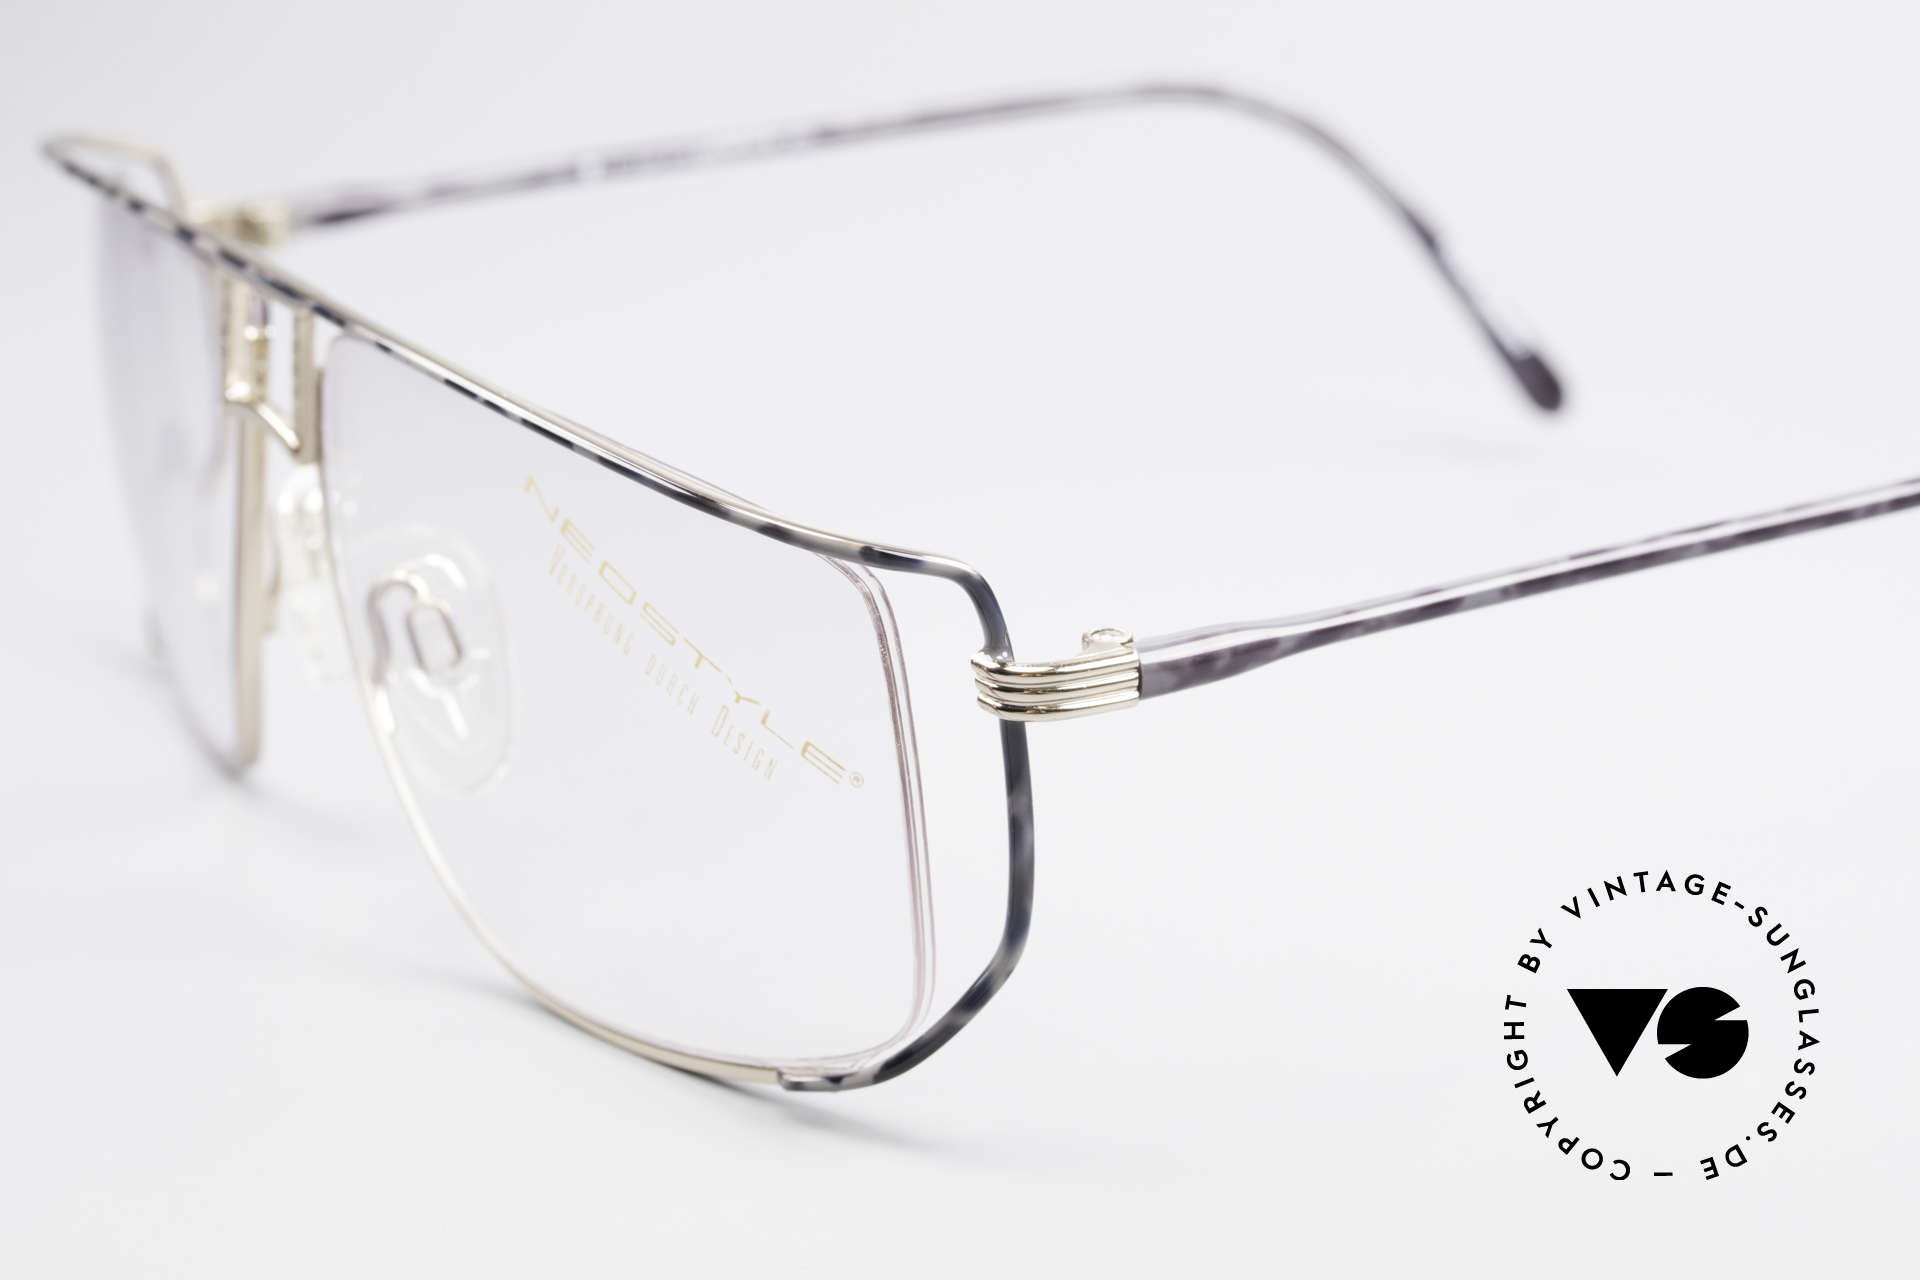 Neostyle Jet 30 Small True Vintage No Retro Frame, brilliant frame coloring 'gold-granite', small size 58/13, Made for Men and Women